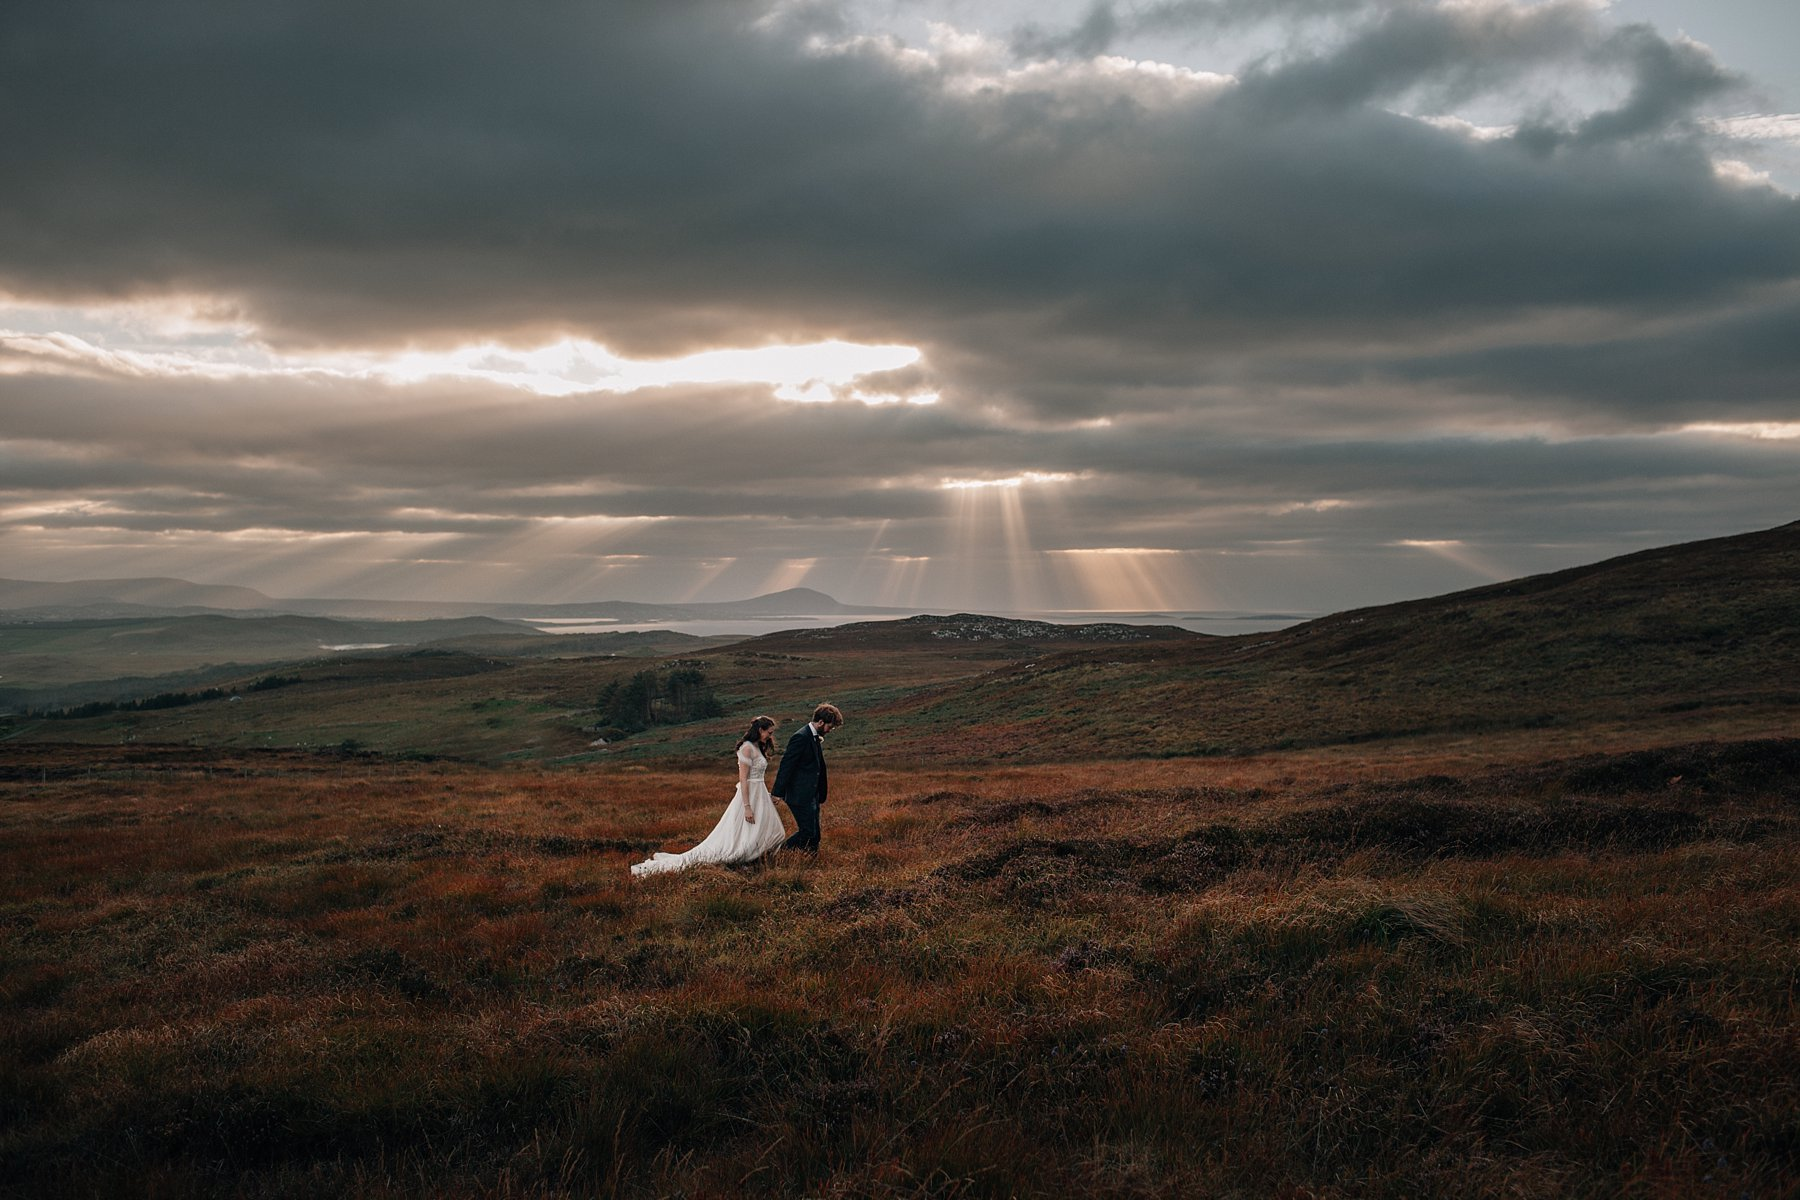 hornhead_donegak_elopement_weddings_0076